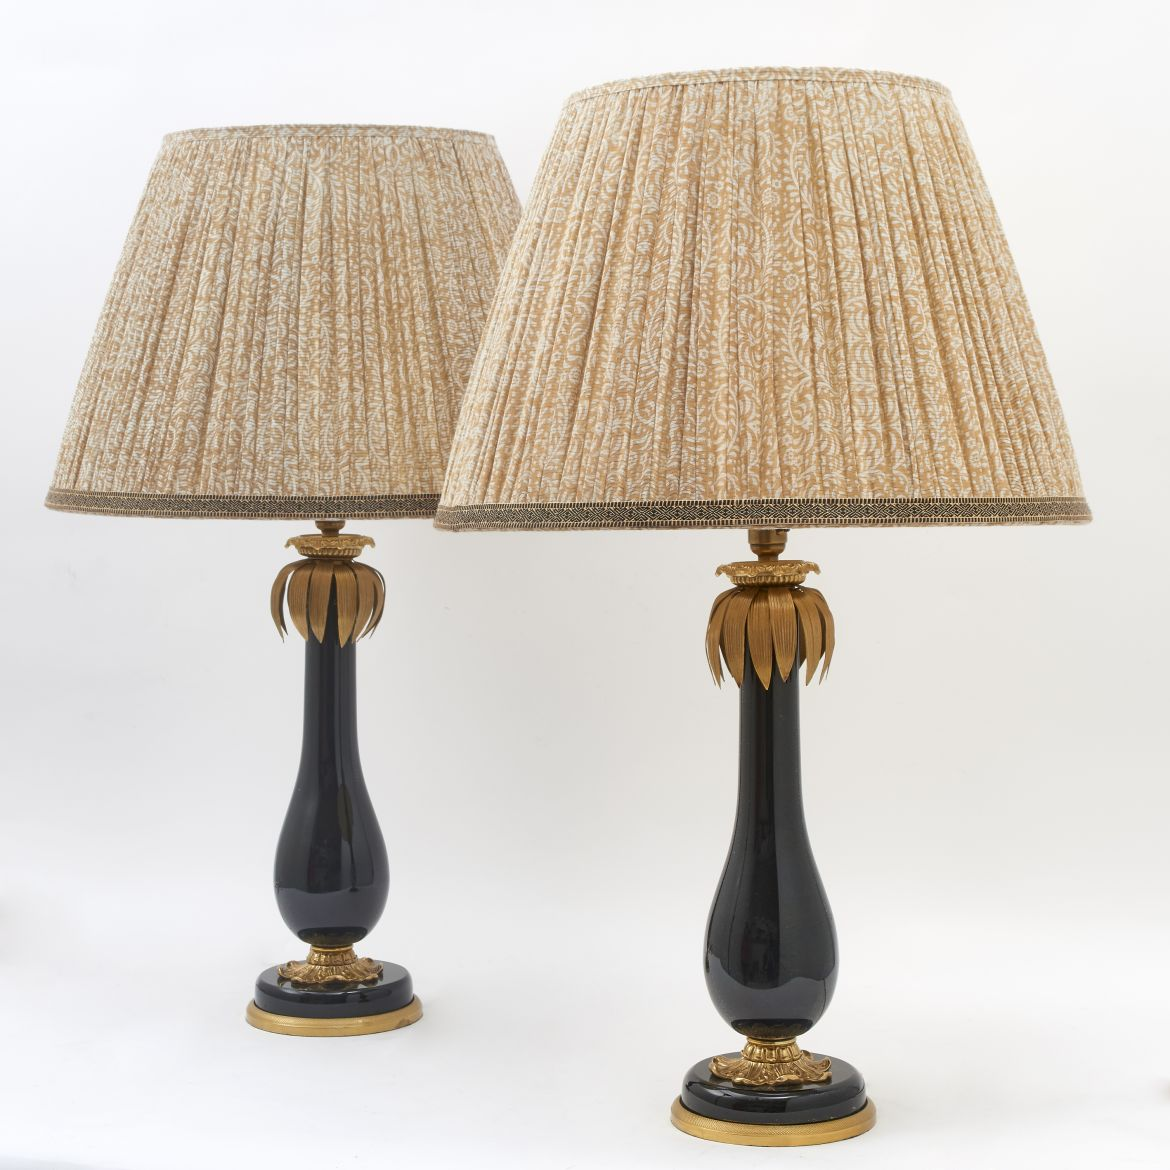 French Glass Lamps With Palm Details